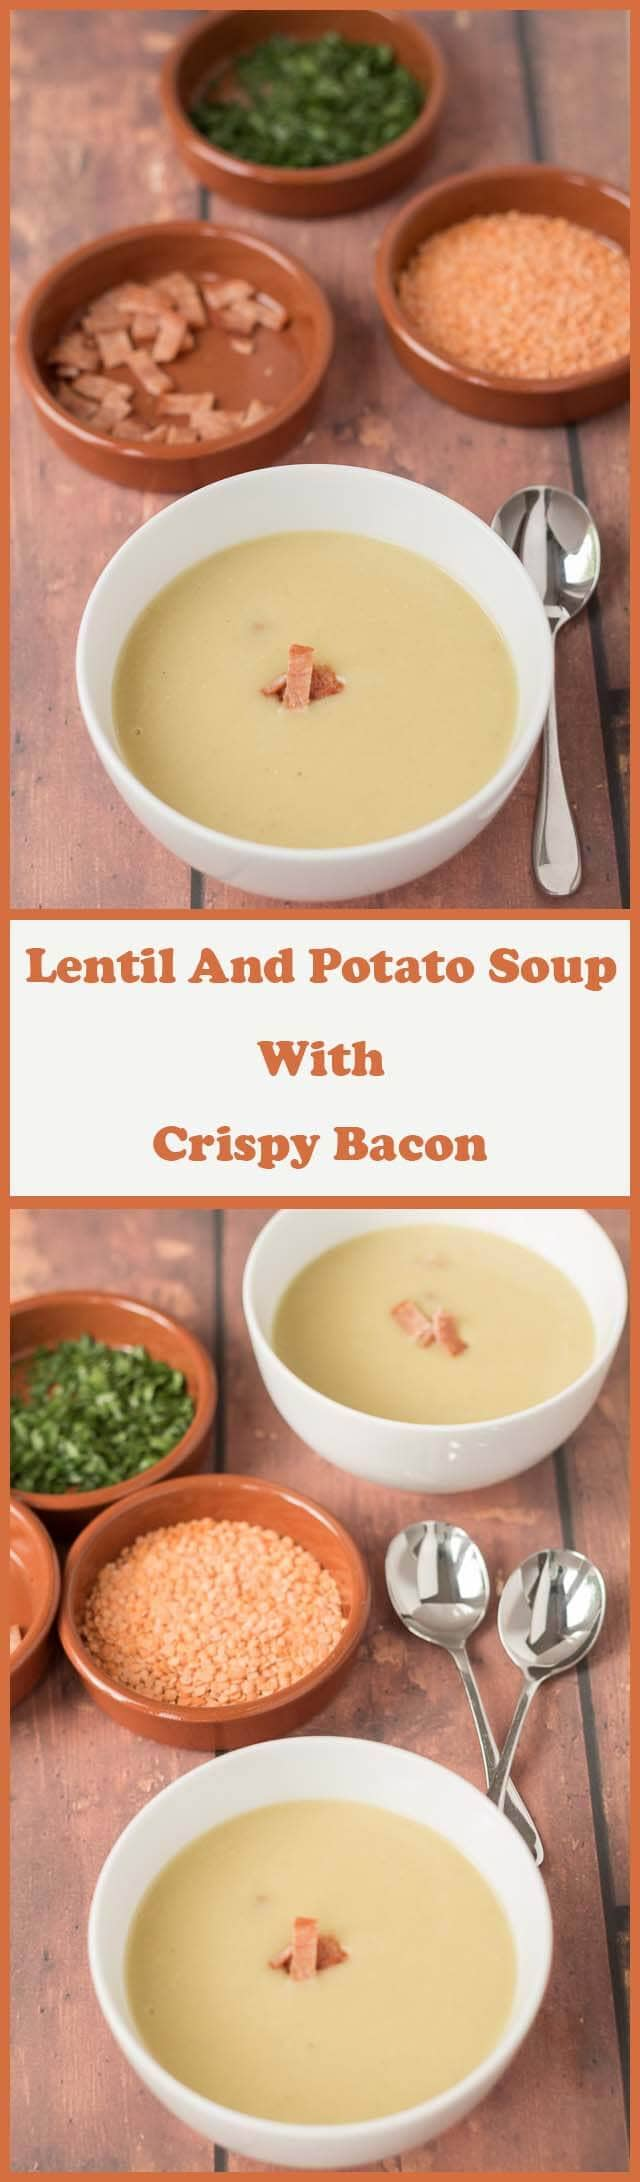 Lentil and potato soup with crispy bacon is really easy to make. With just four ingredients you can have this recipe on the table in less than one hour!